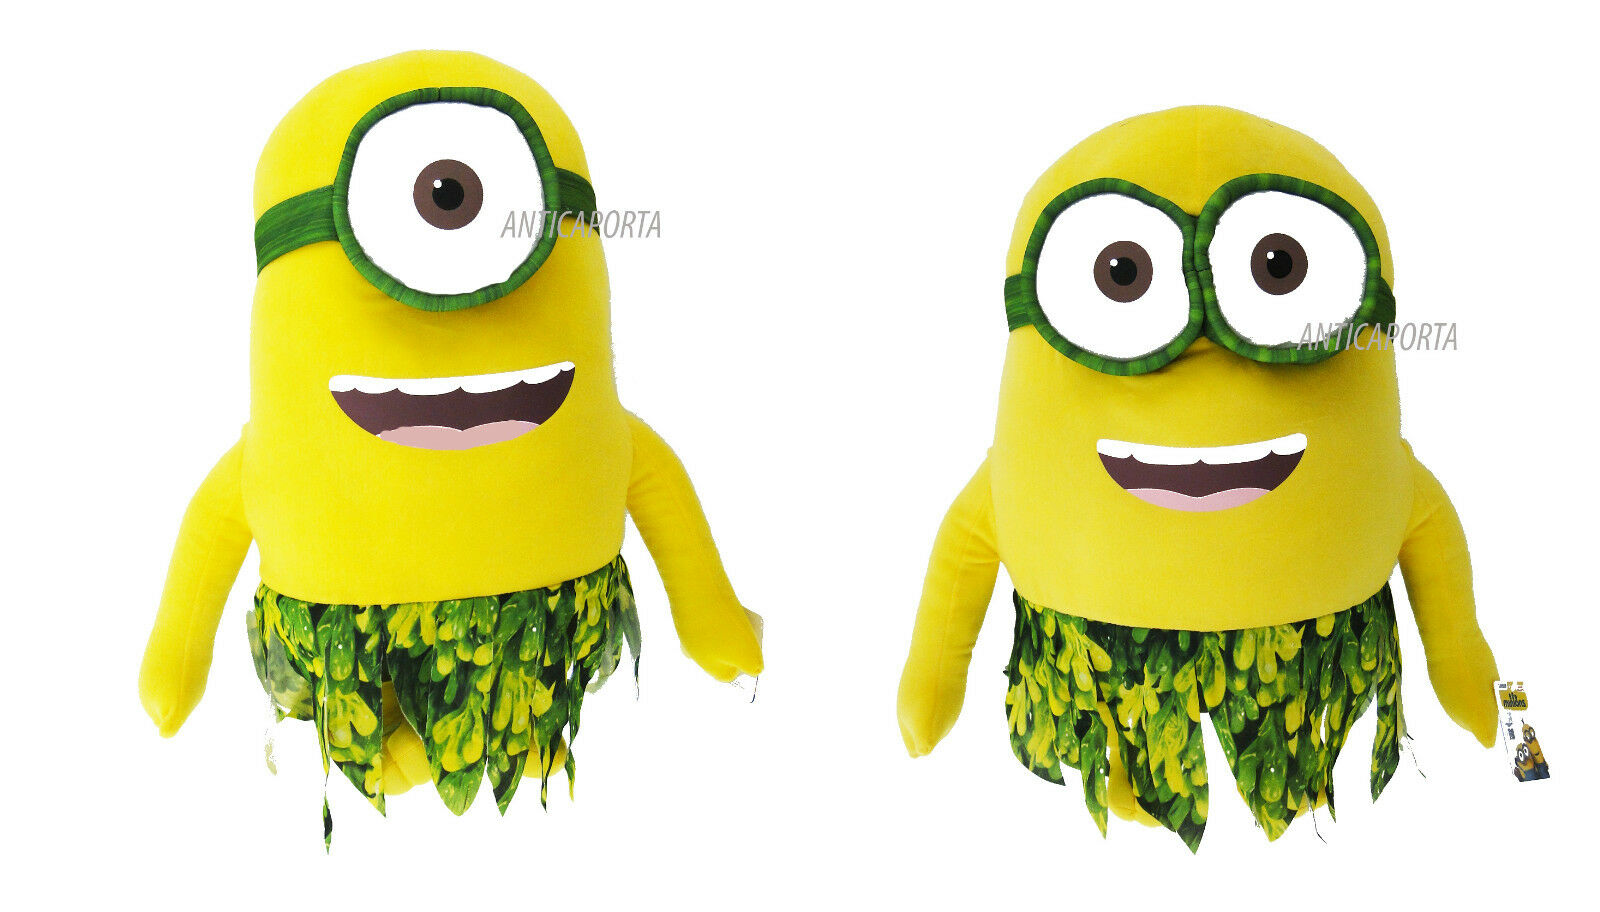 Soft toy Minions Film 2015 A Natural dresses Nature Bob Stuart Huge 62 cm